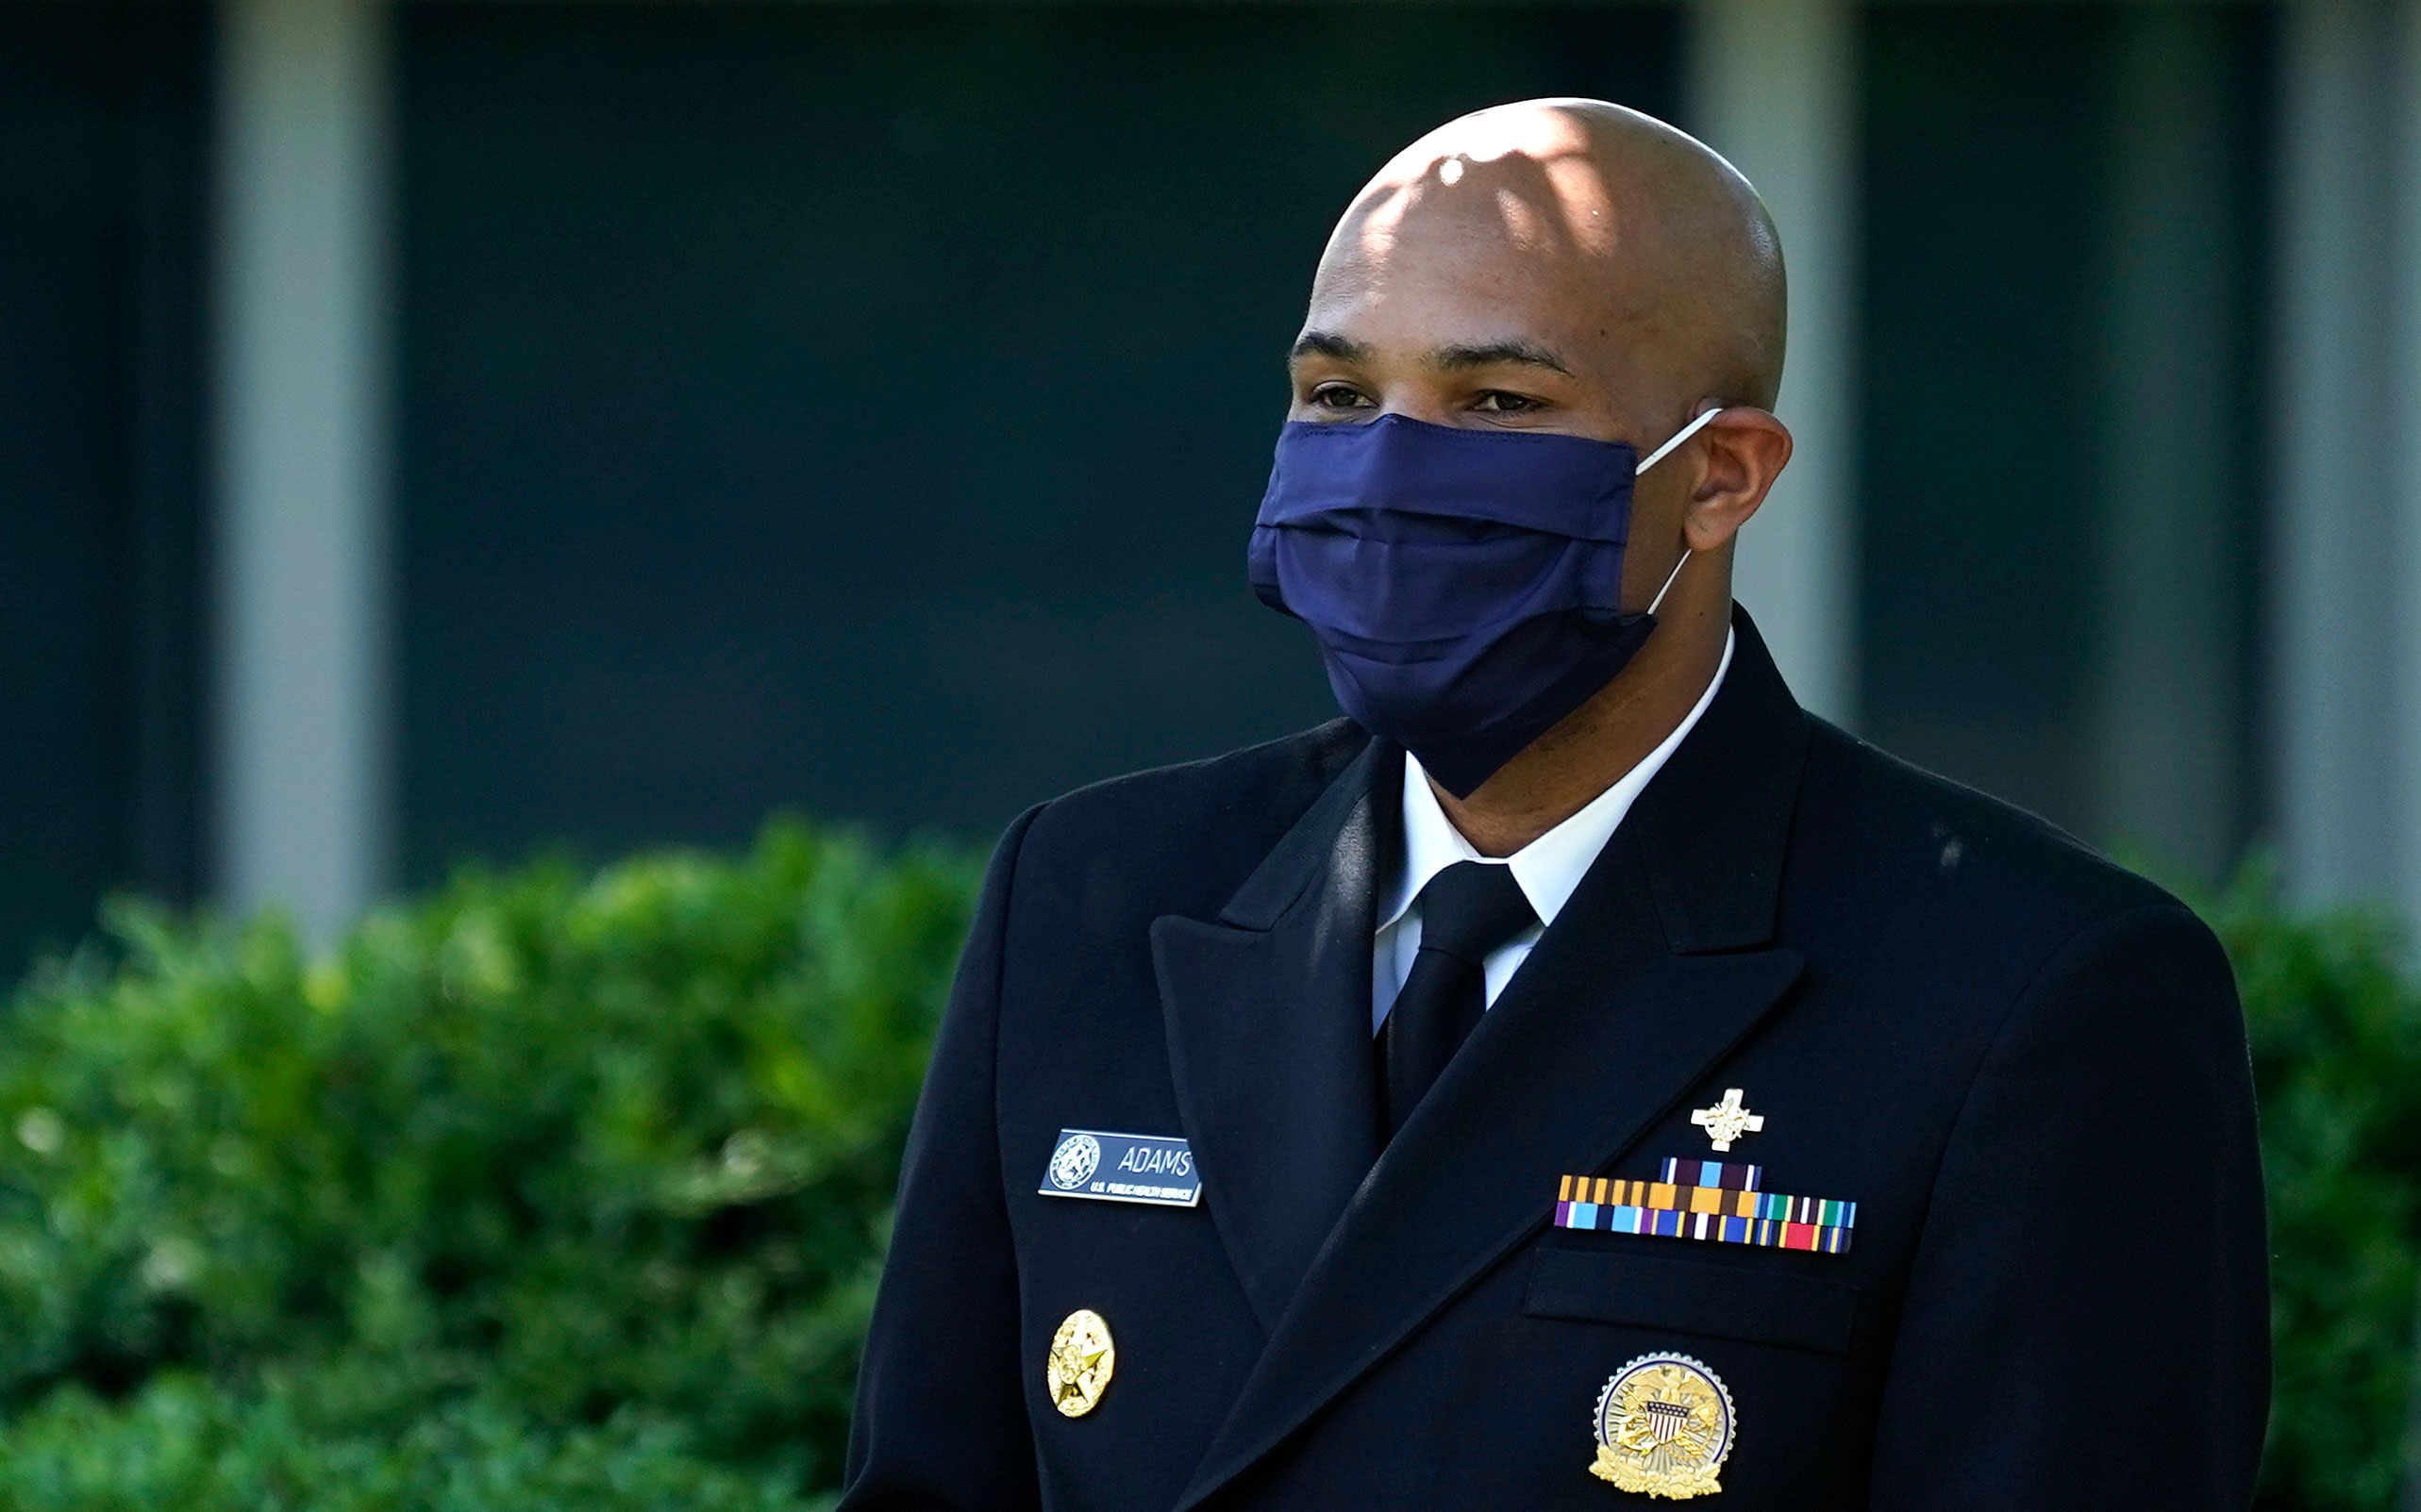 US Surgeon General Jerome Adams attends a news conference in the Rose Garden of the White House on May 15 in Washington, DC.